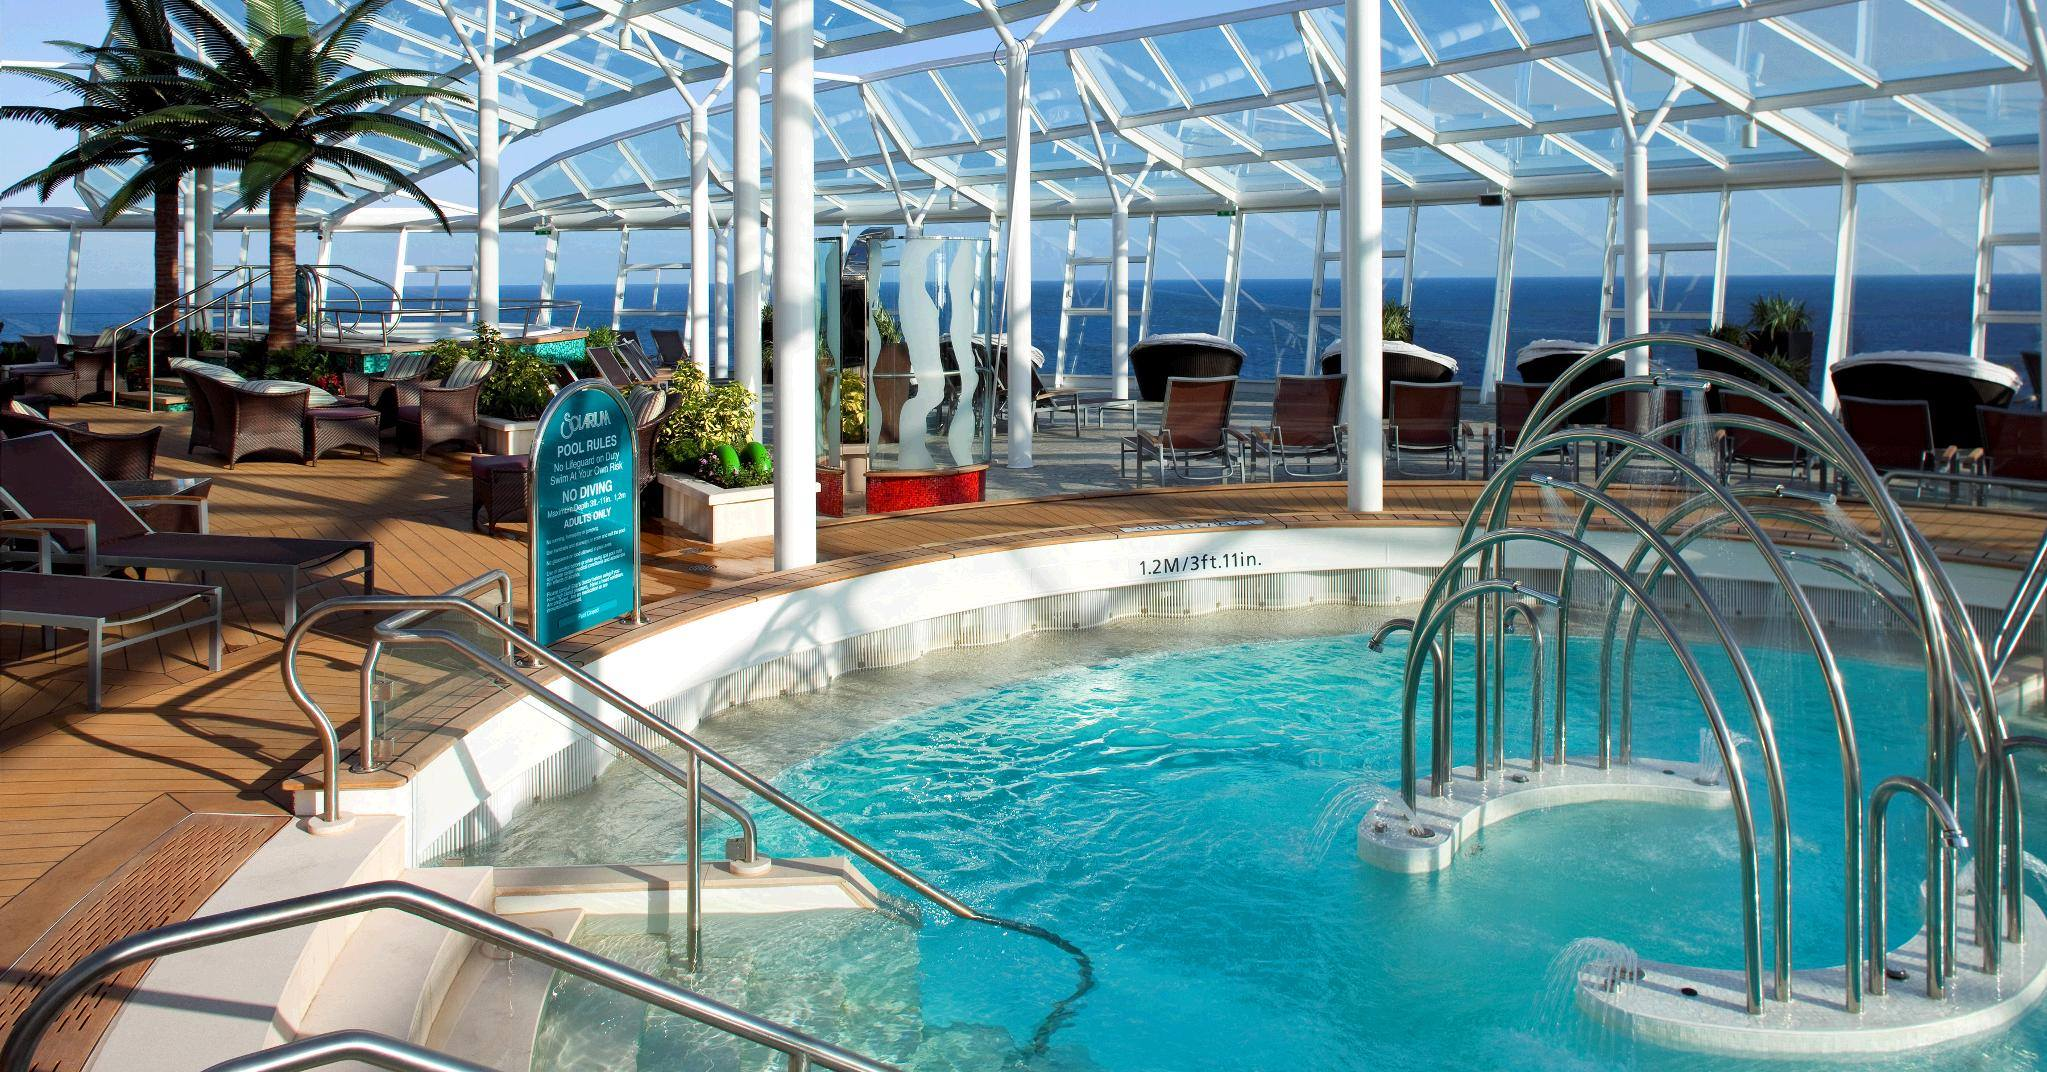 25 Tips to Save BIG on Your Next Cruise - pool